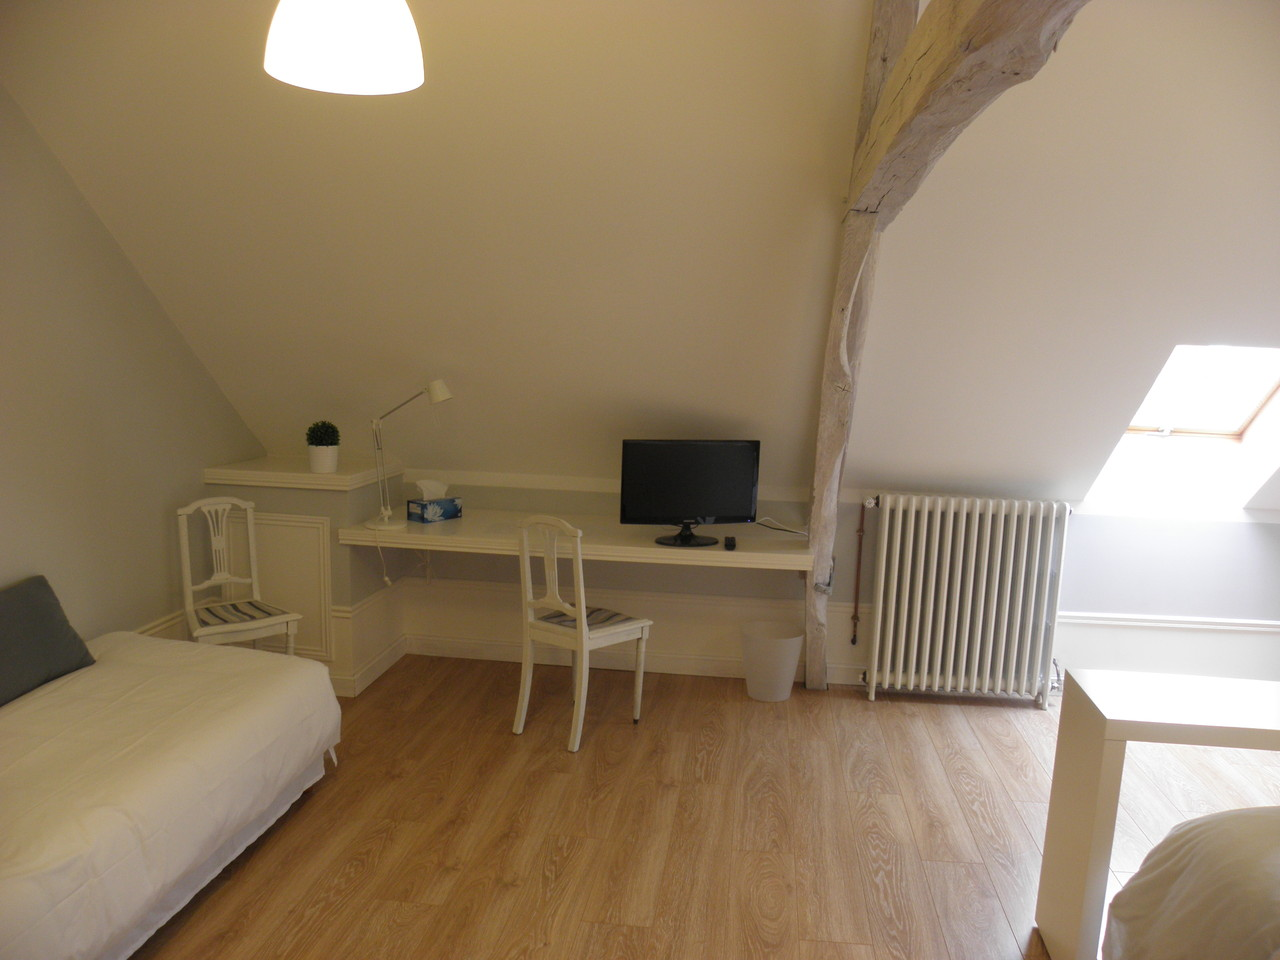 b&b bed and breakfast chambre d'hote proche de amiens moreuil